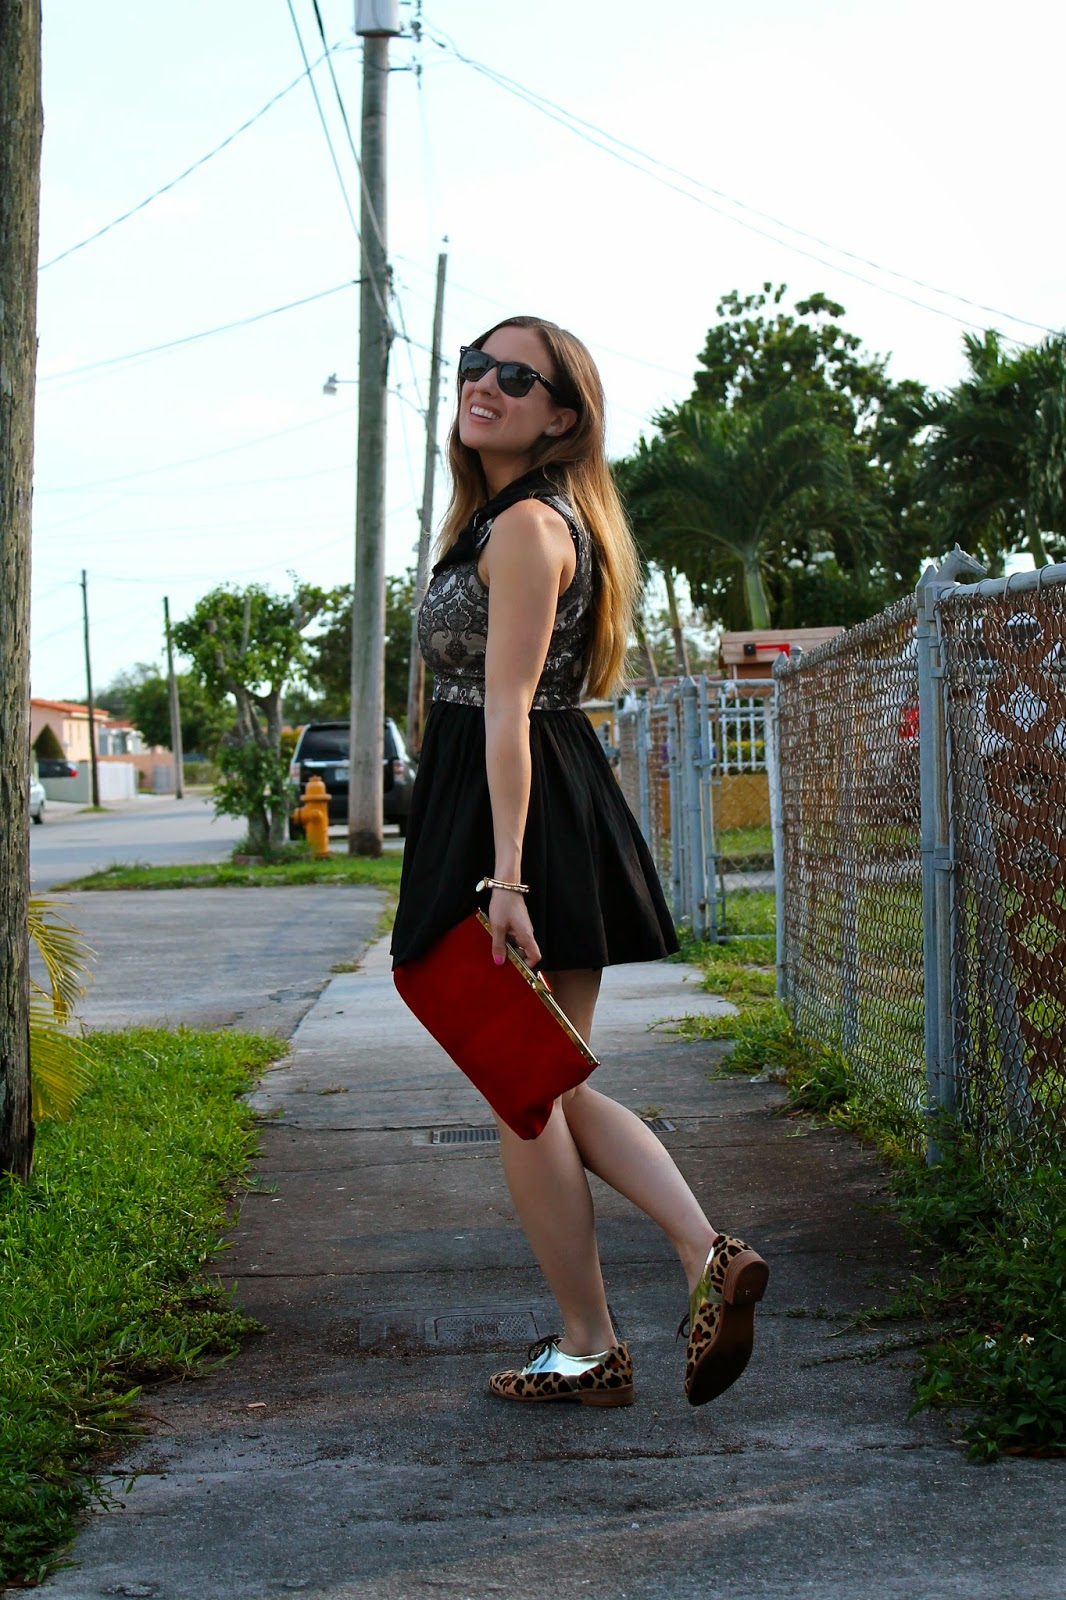 Fall trends, fall fashion, fashion blog, Miami fashion blogger, Ray-Ban, vintage, LF Stores, Anthropologie, cheetah print oxfords, Kate Spade, outfit ideas, street style, outfit inspiration, style inspiration, style blog, lifestyle blog